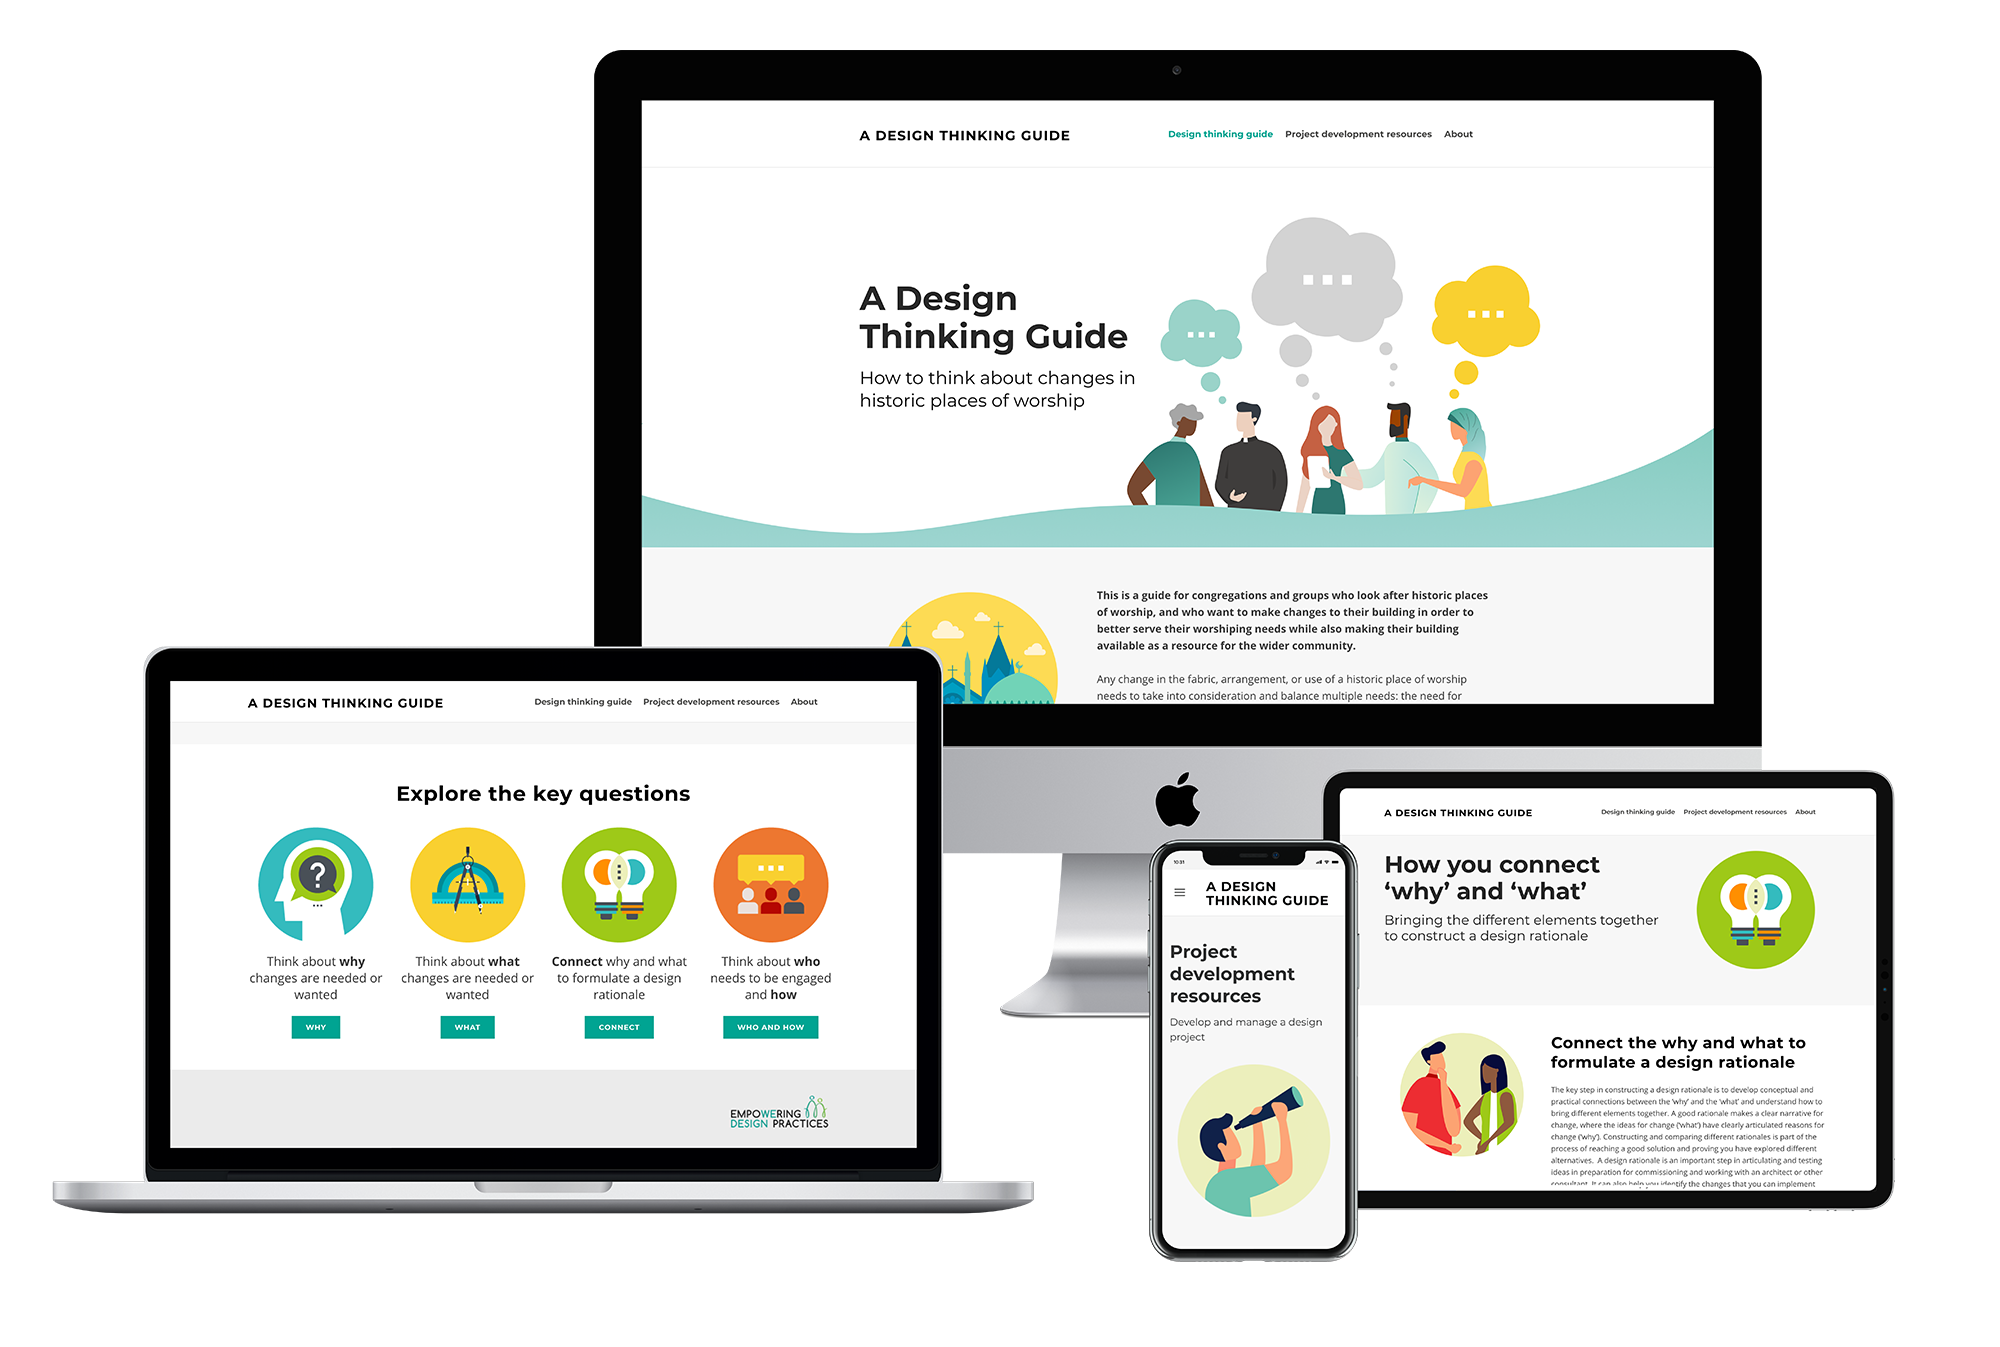 Design Thinking Guide website displayed on various devices